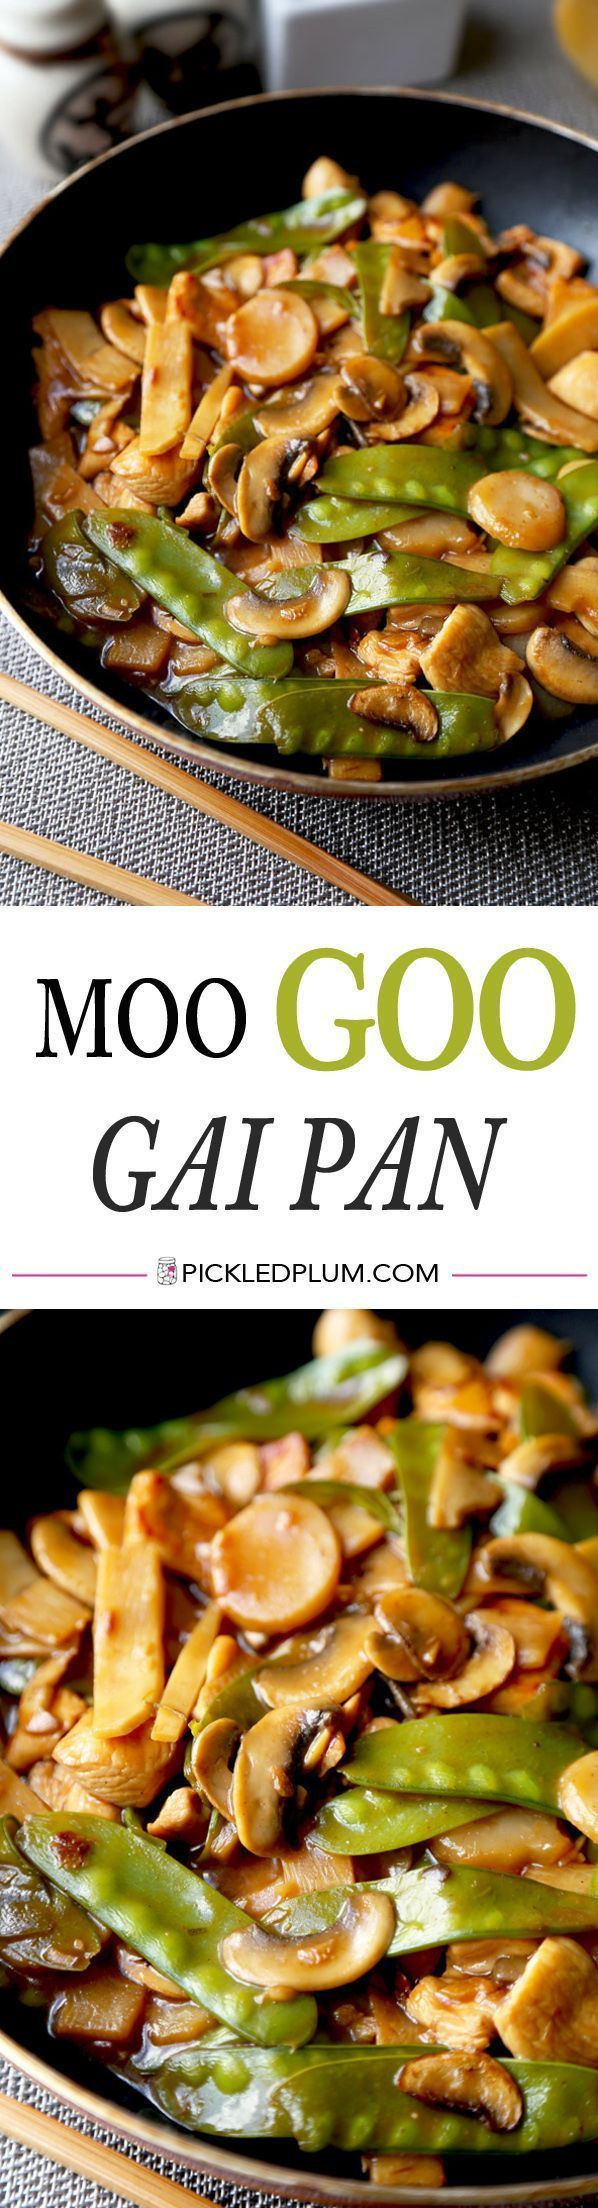 Moo Goo Gai Pan - Easy recipe for Chinese chicken and vegetable stir fry tossed…